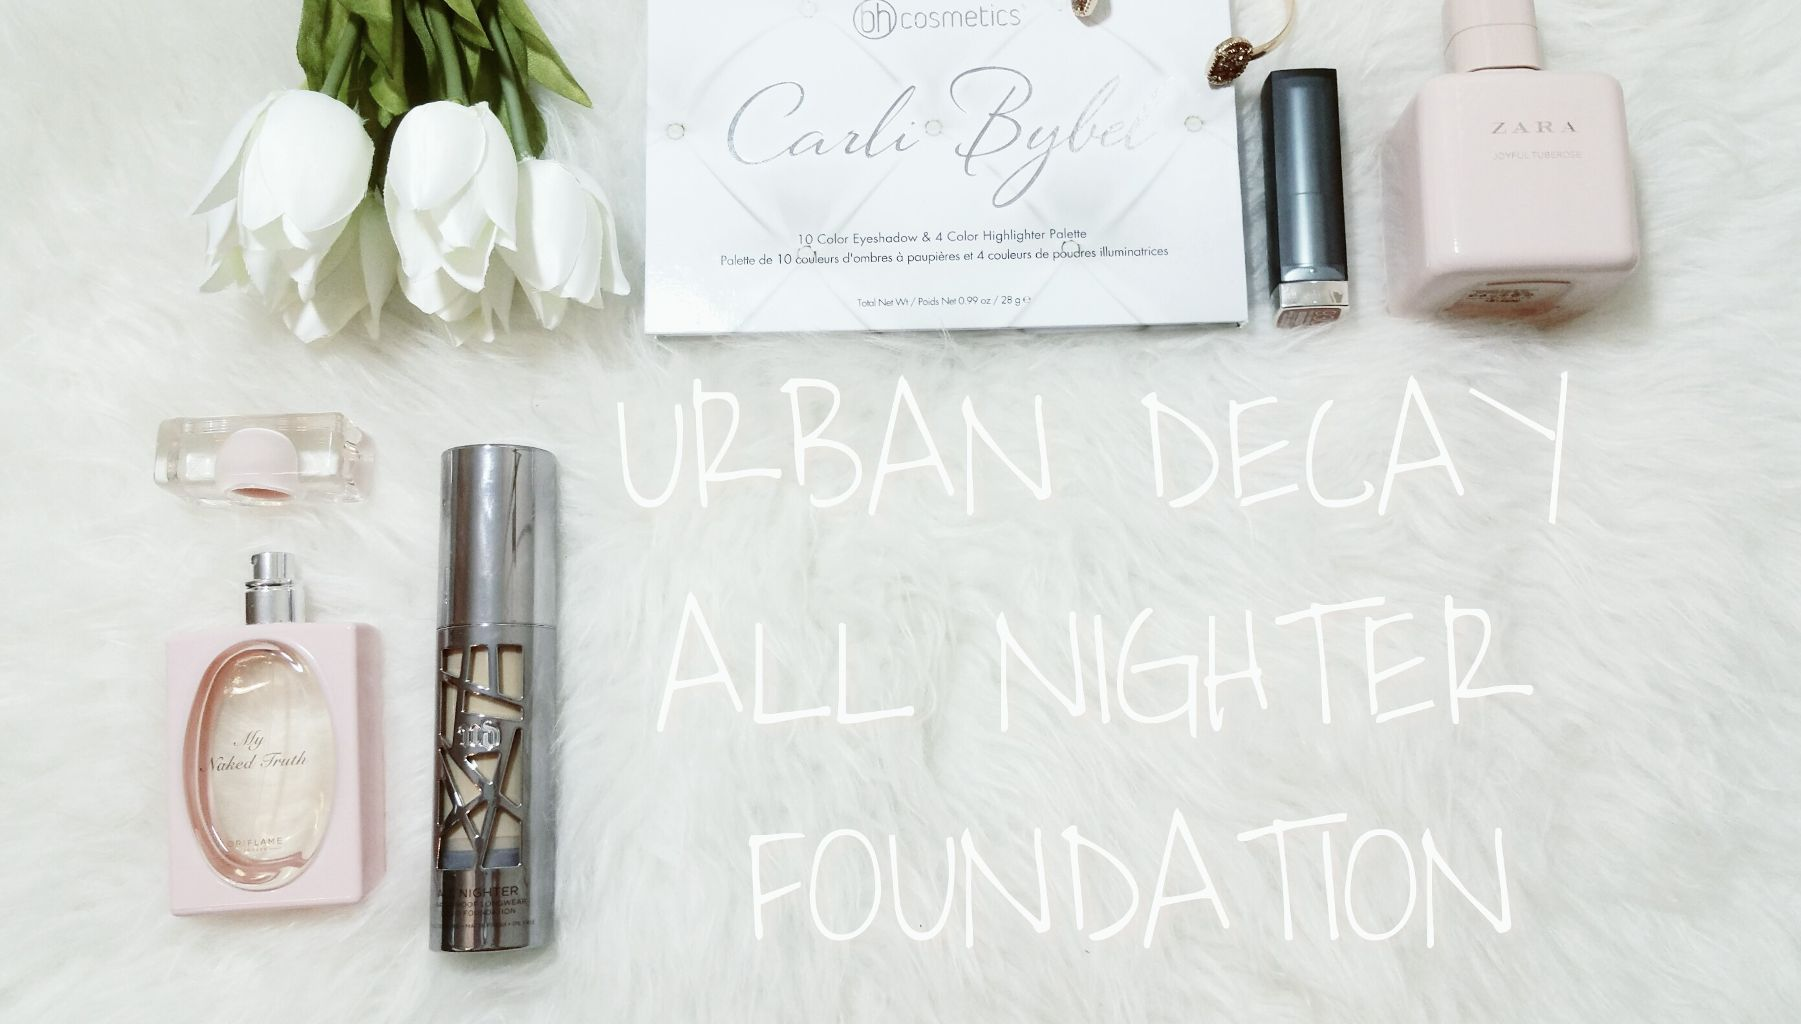 URBAN DECAY ALL NIGHTER FOUNDATION : REVIEW